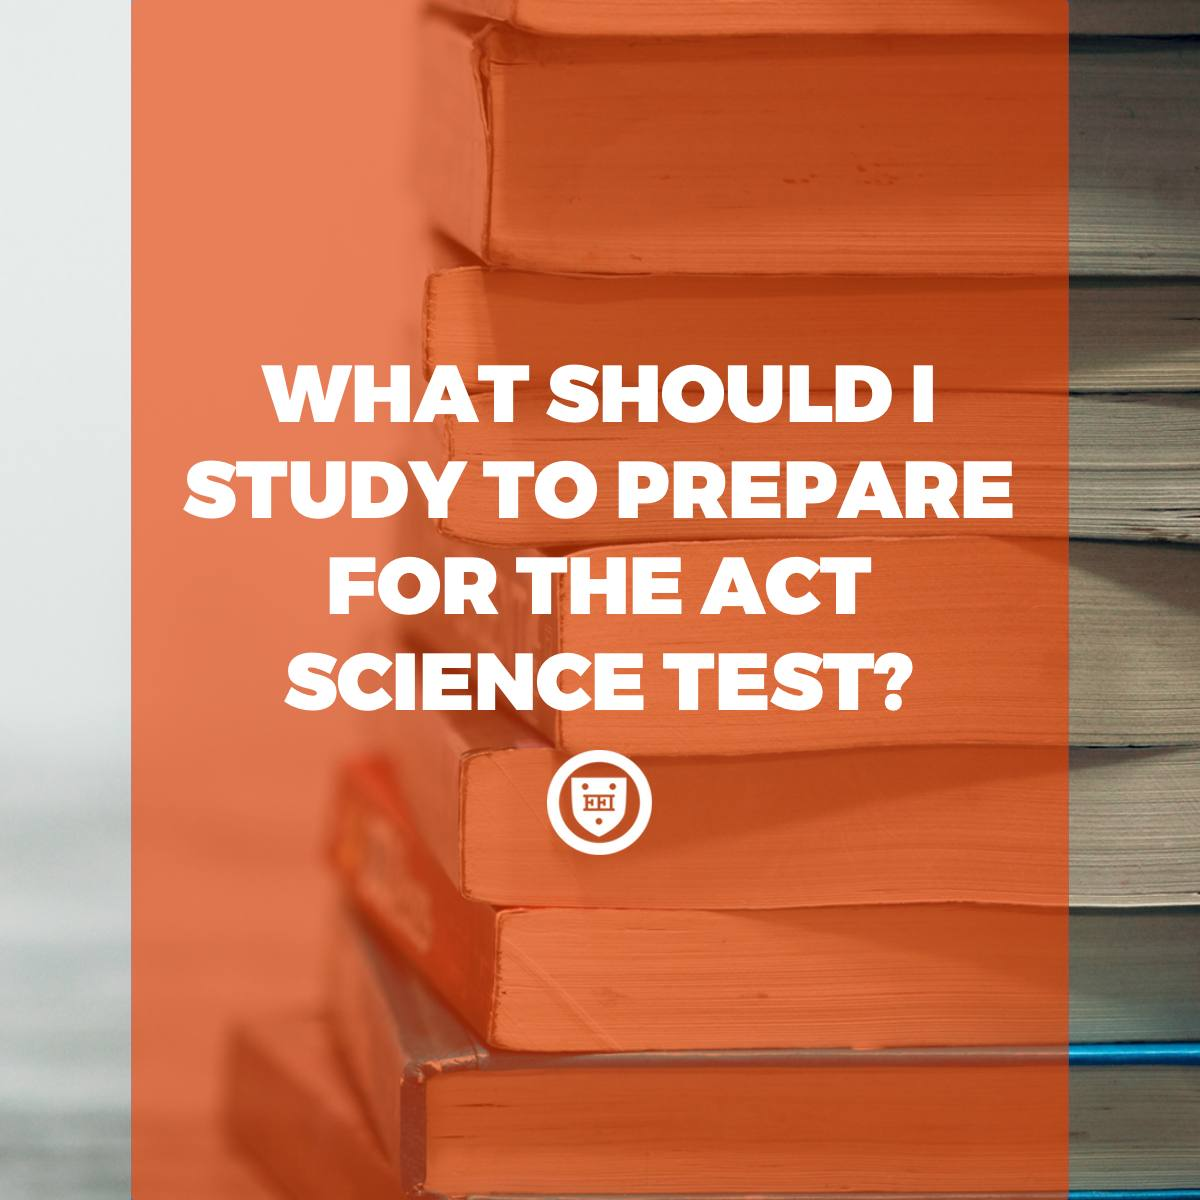 What Should I Study to Prepare for the ACT Science Test?